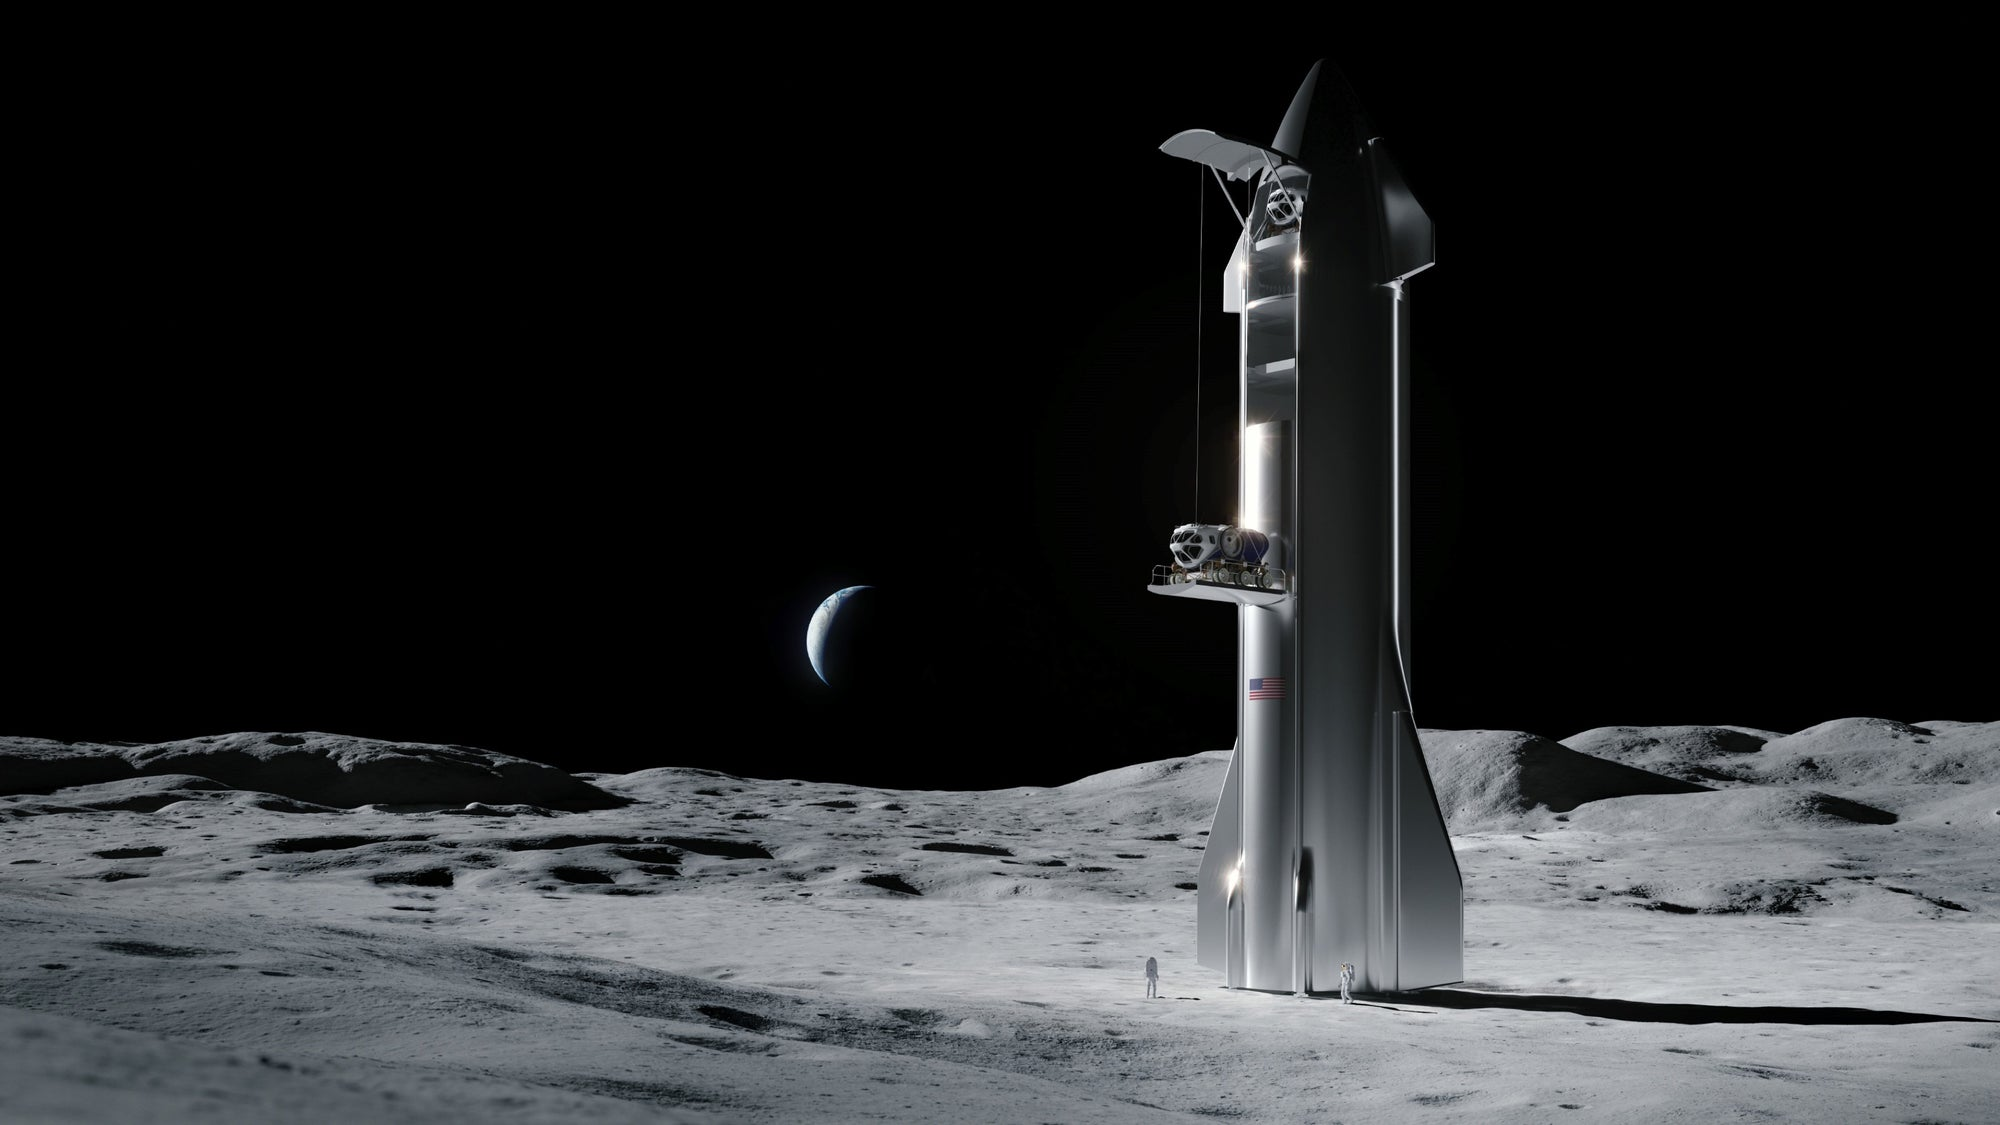 SpaceX releases a Starship 'User Guide' offering insight into its future capabilities